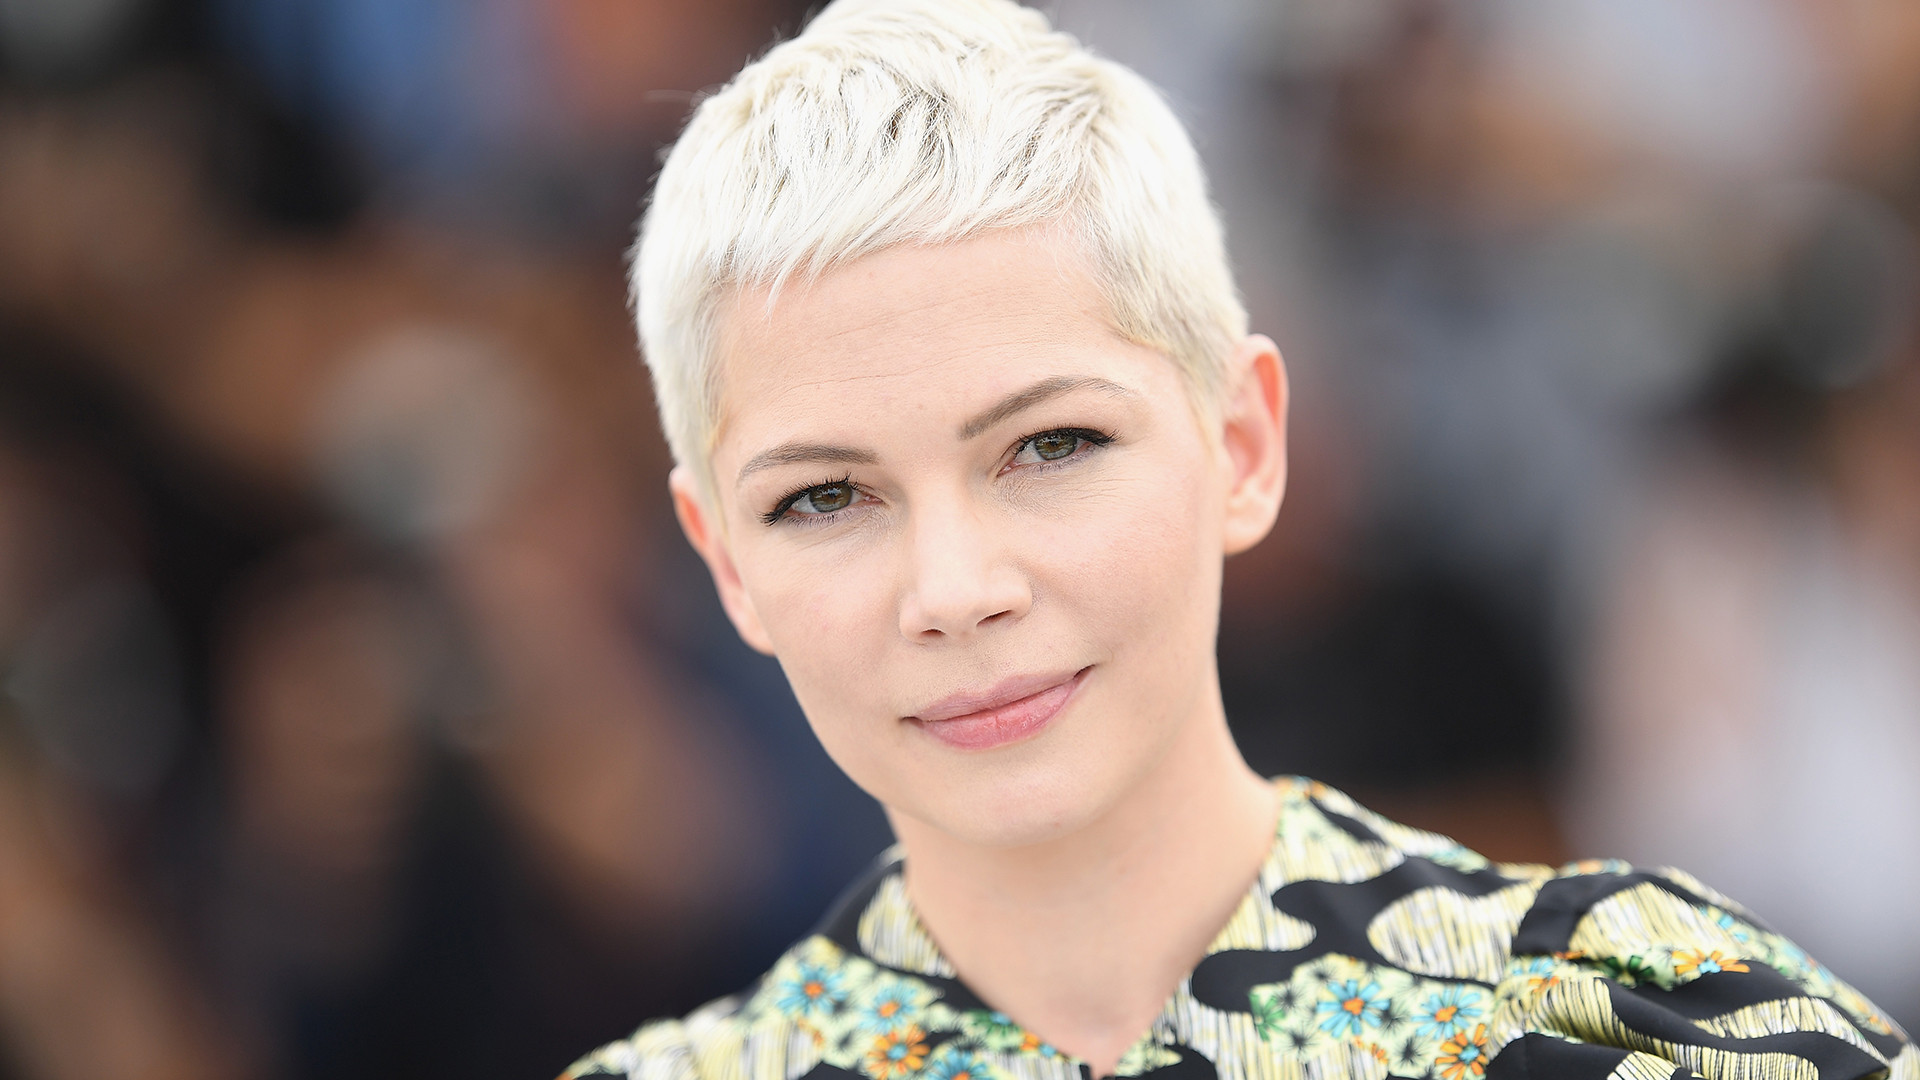 michelle-williams-husbandsplit-couple-ends-relationship-less-than-1-year-after-secret-wedding